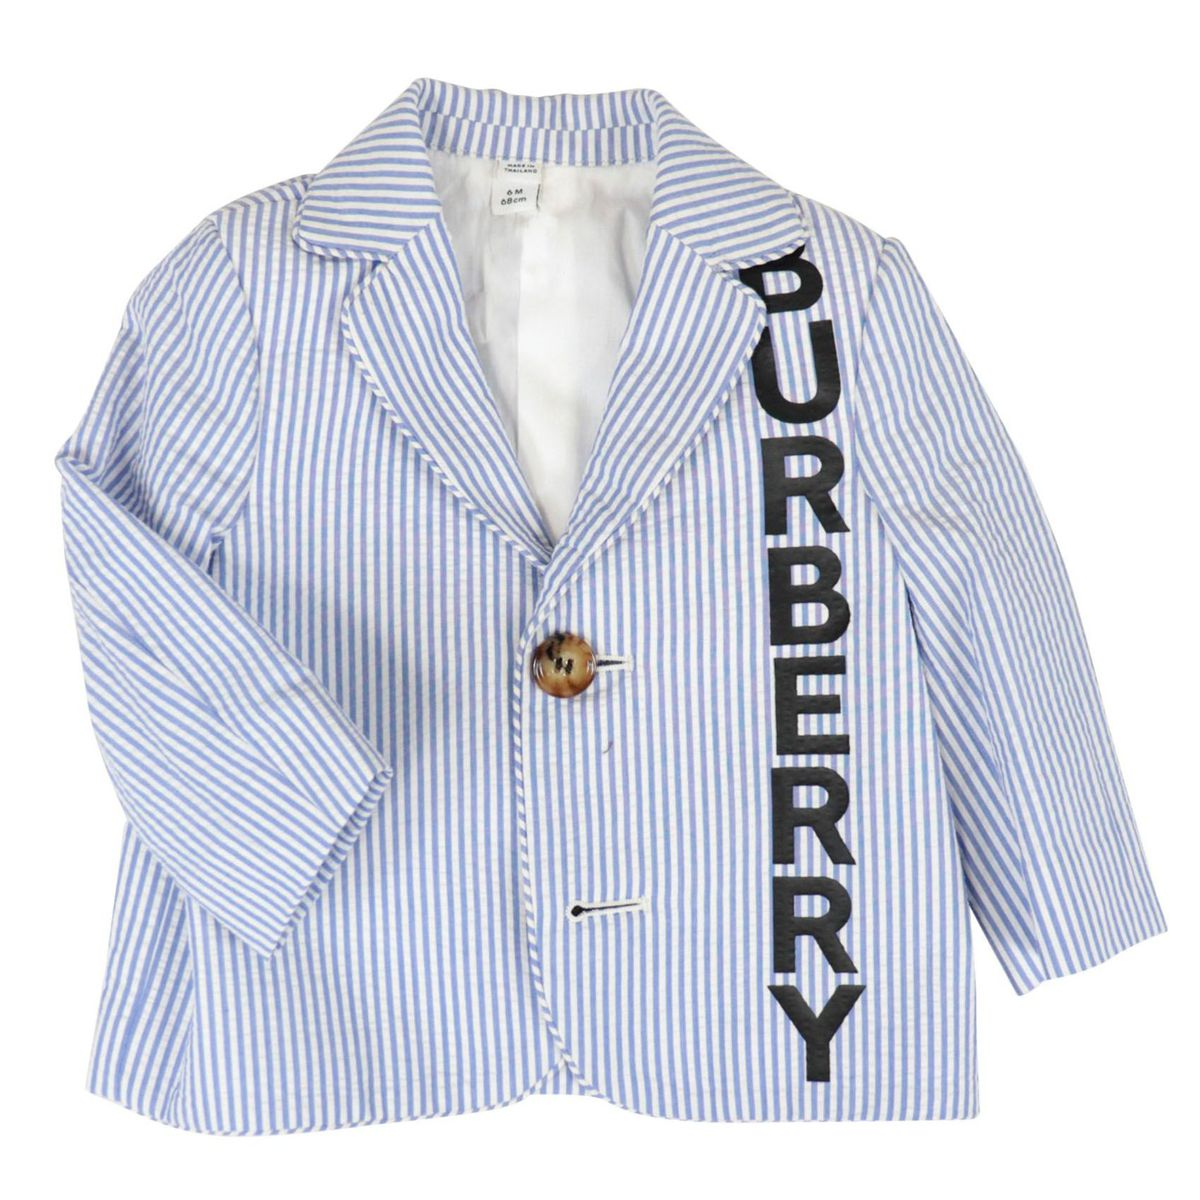 Manuel two-button cotton jacket with large logo writing White / blue Burberry